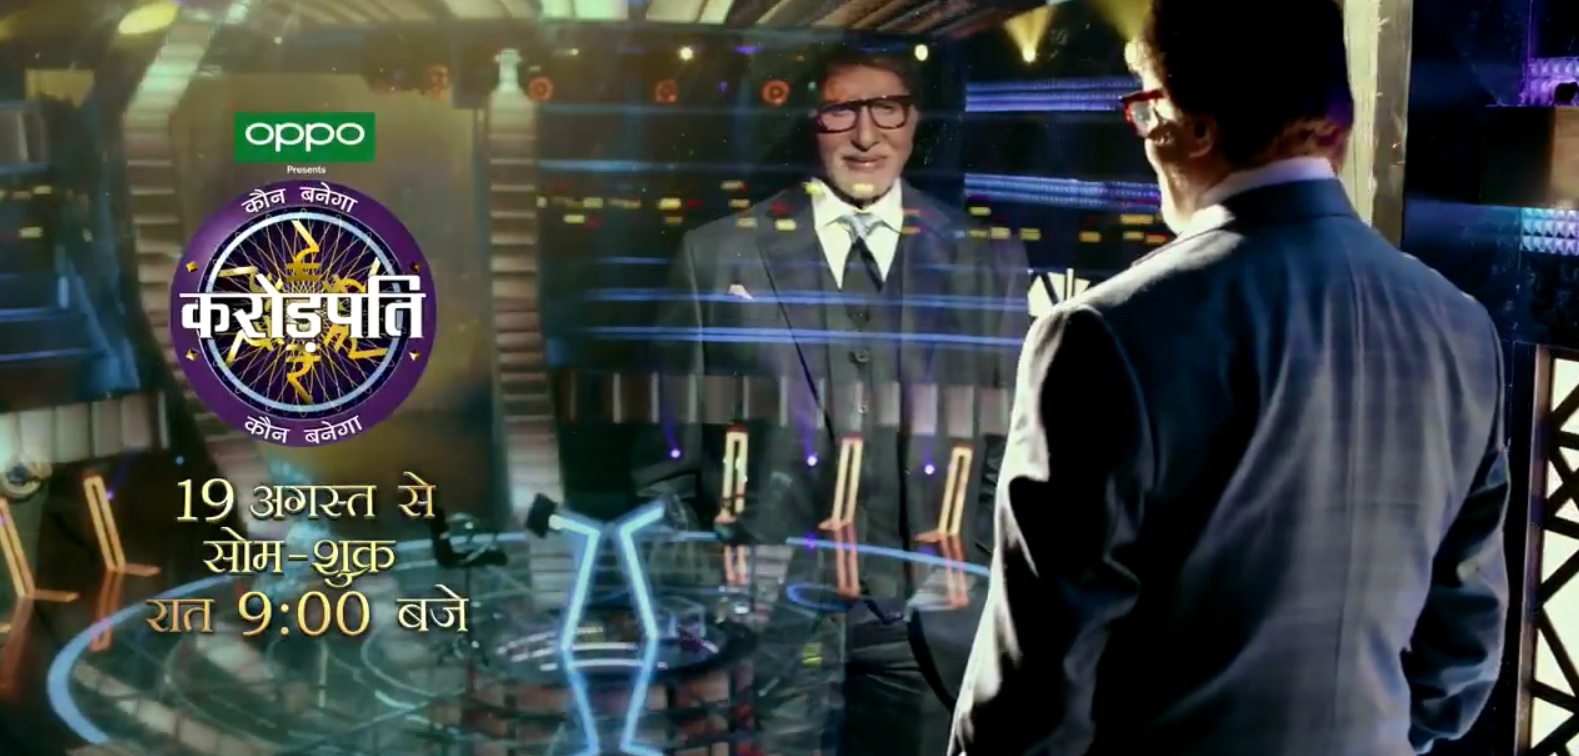 KBC LIFE CHANGING MONENT FROM 19TH AUGUST